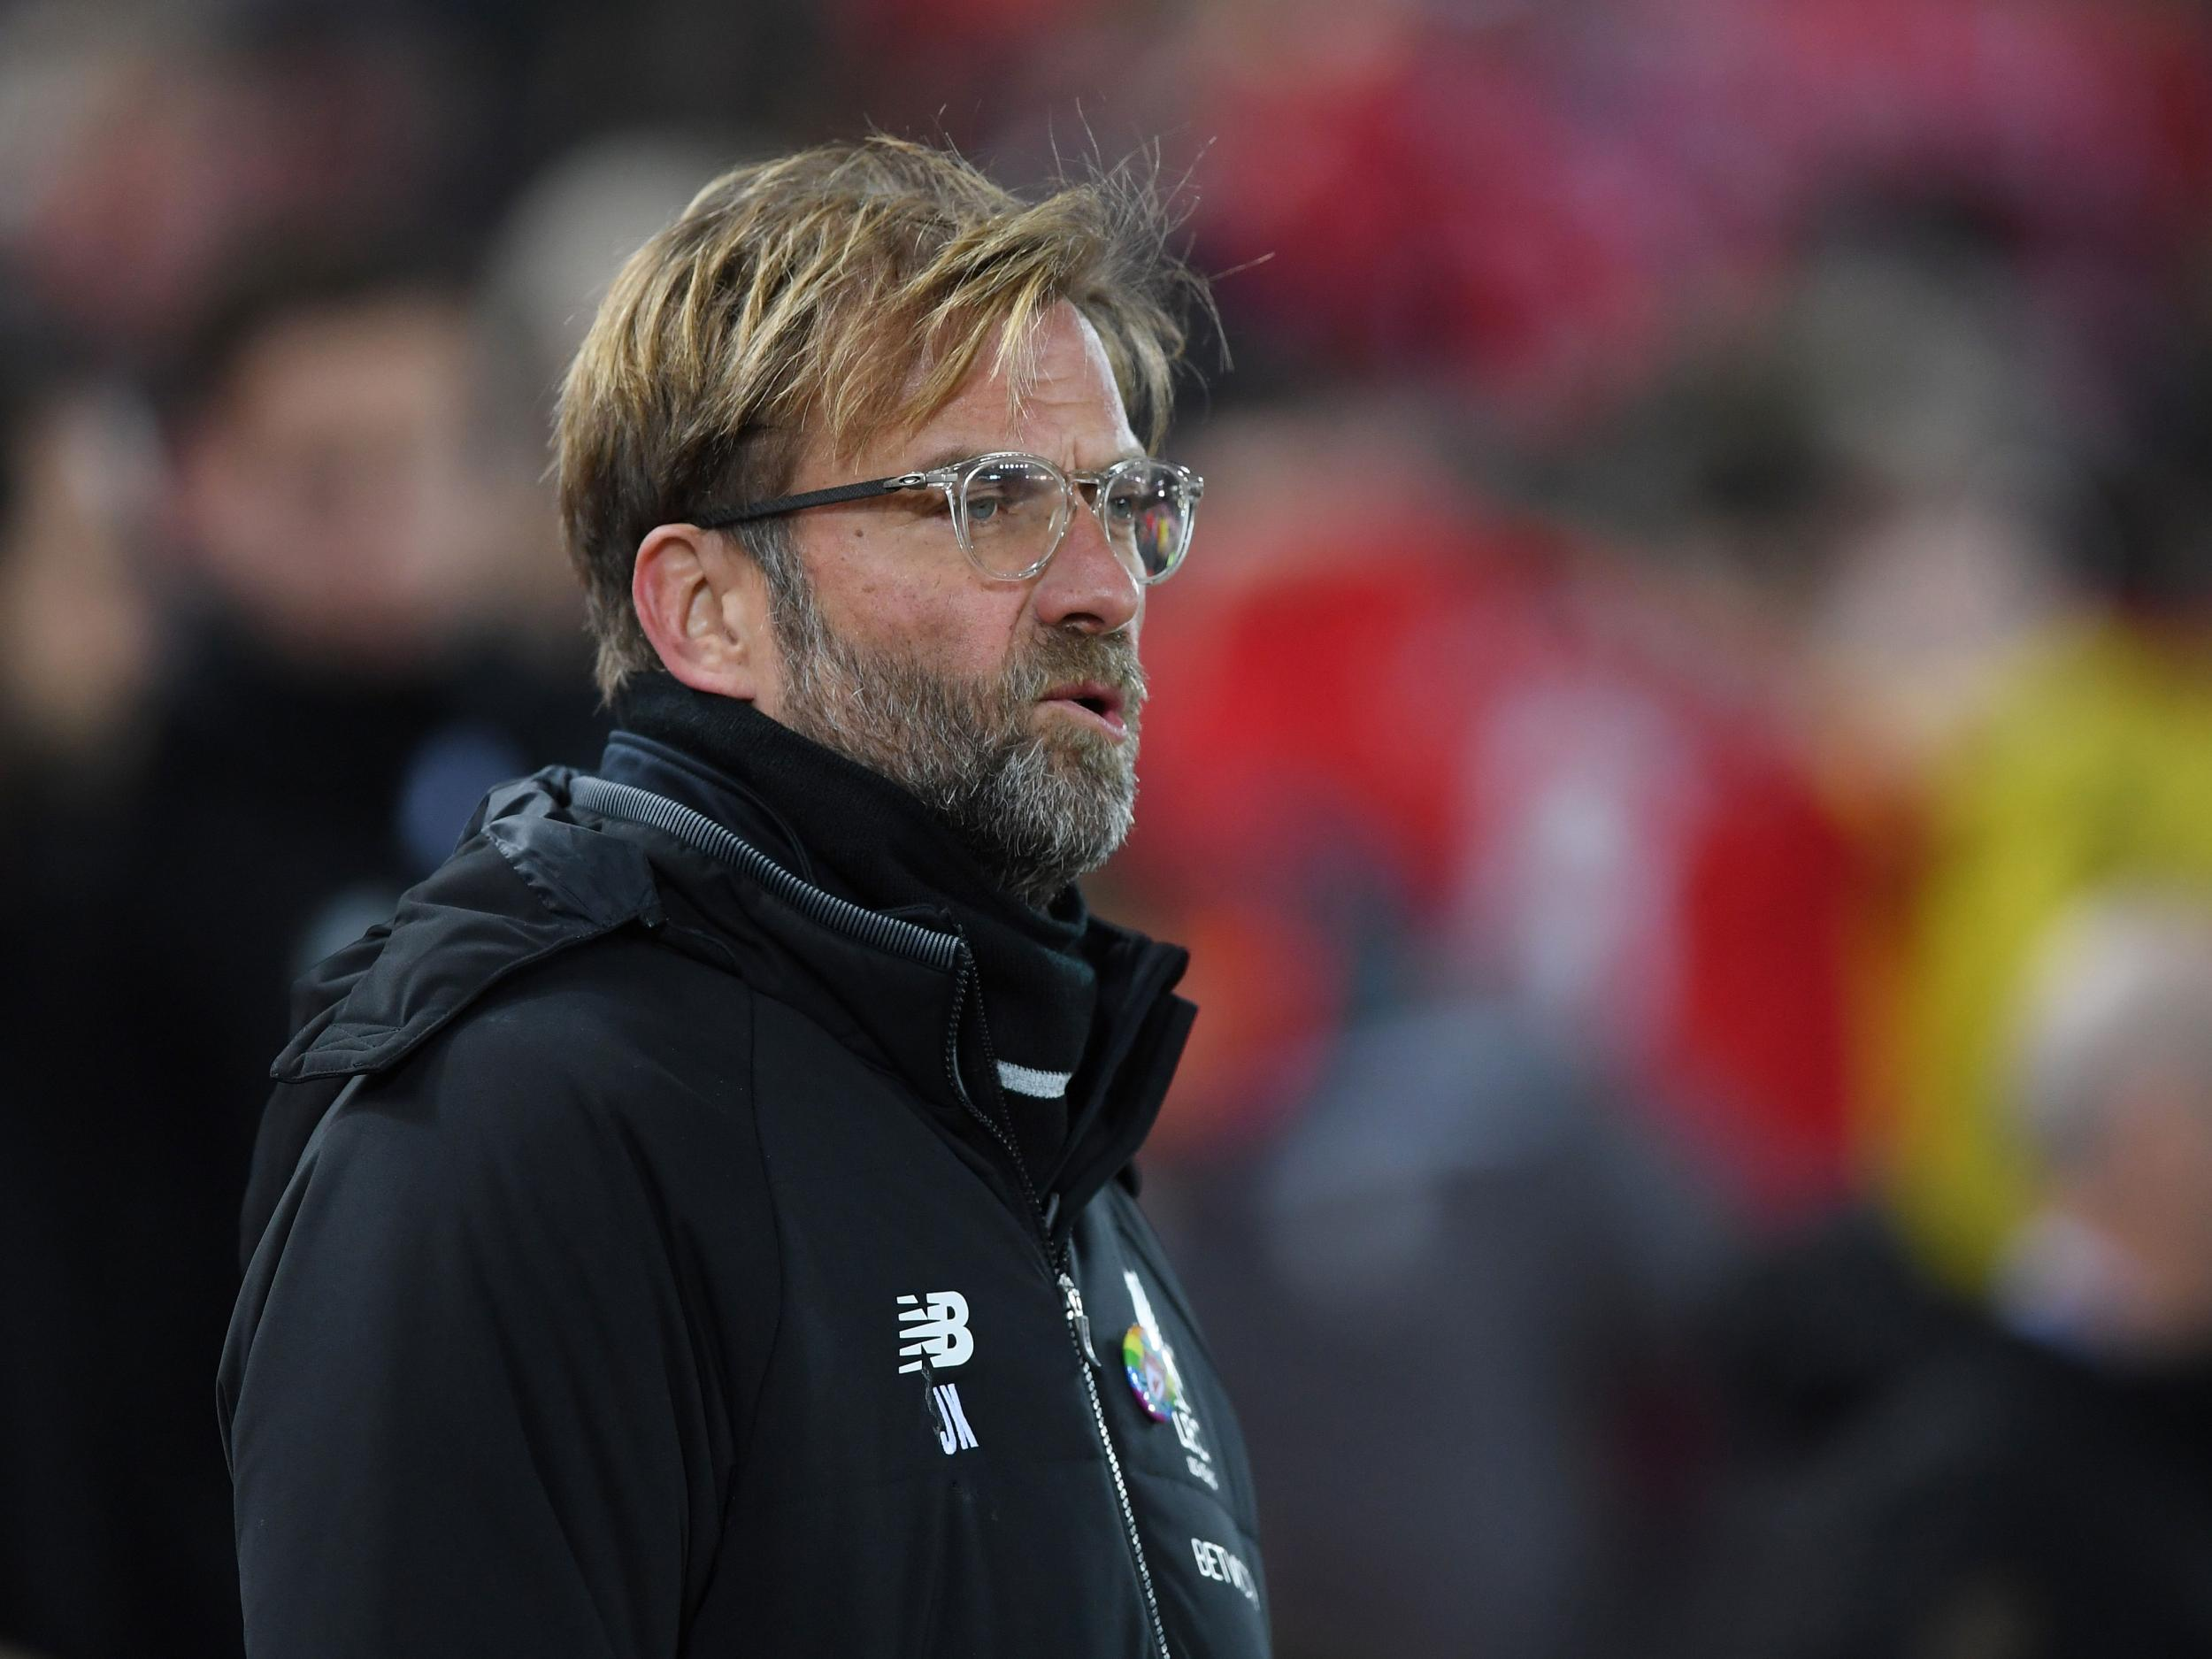 Liverpool manager Jurgen Klopp tells players to capitalise on any Manchester City slip-ups